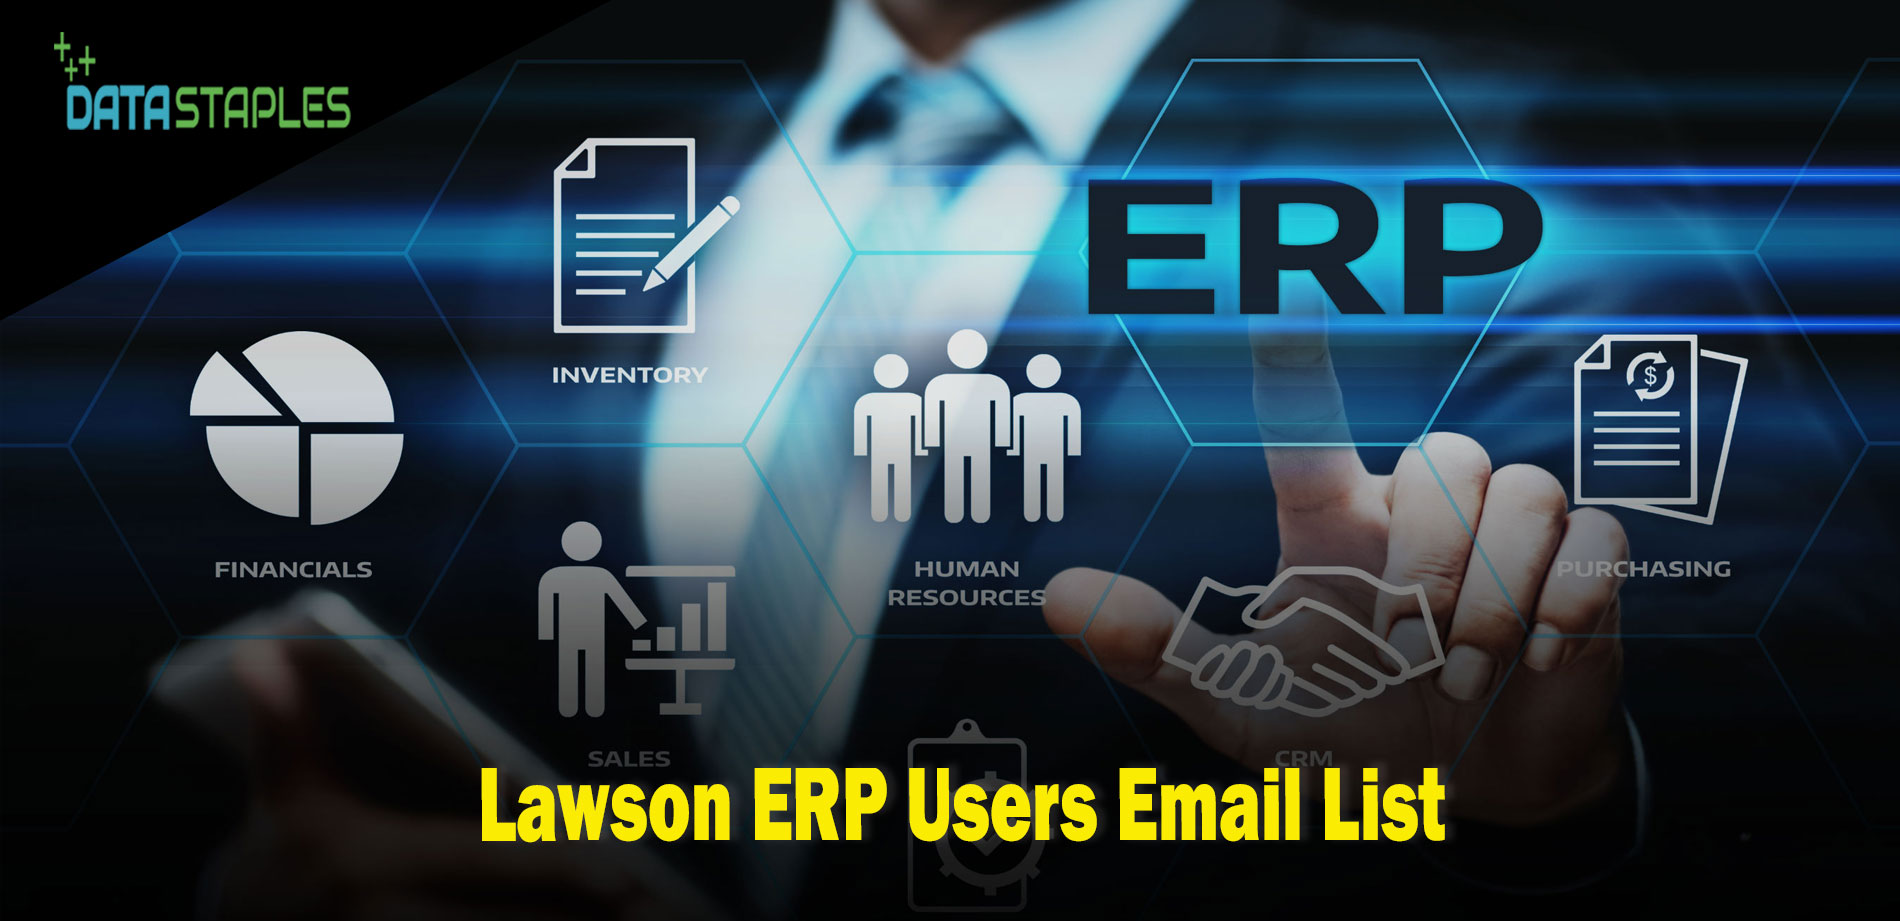 Lawson ERP Users Email List | DataStaples